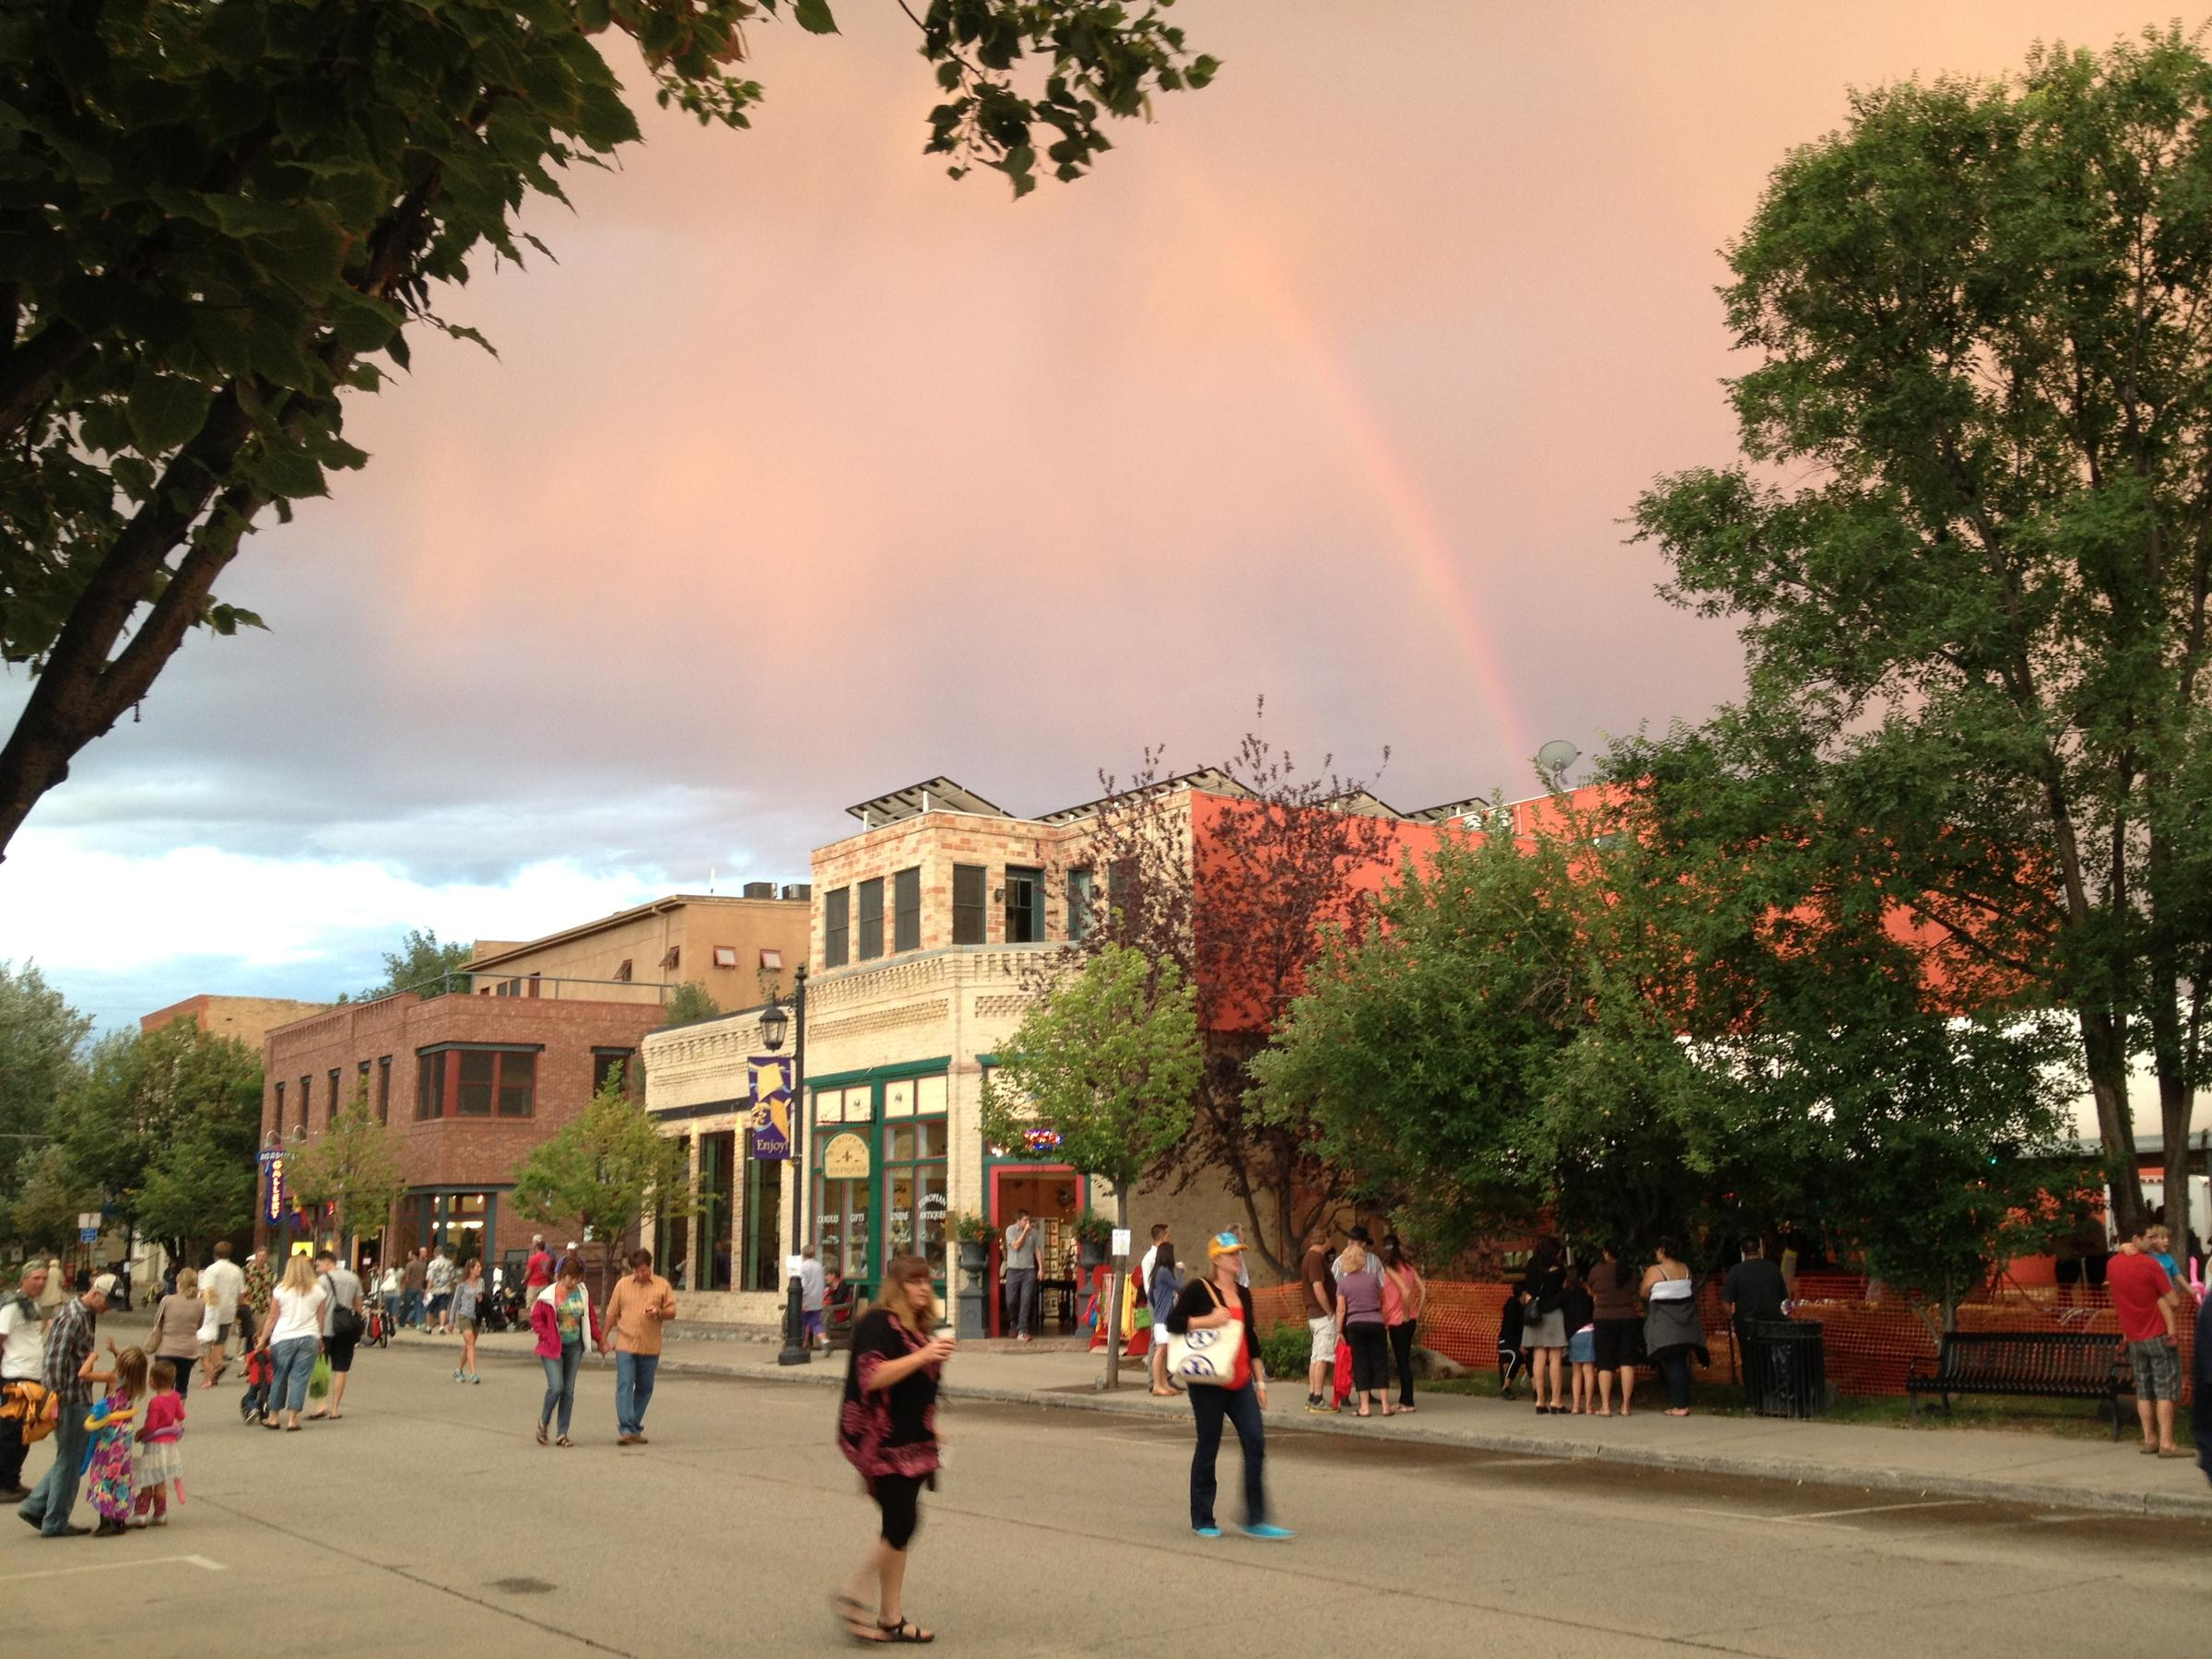 Carbondale Creative District and Artspace begin housing